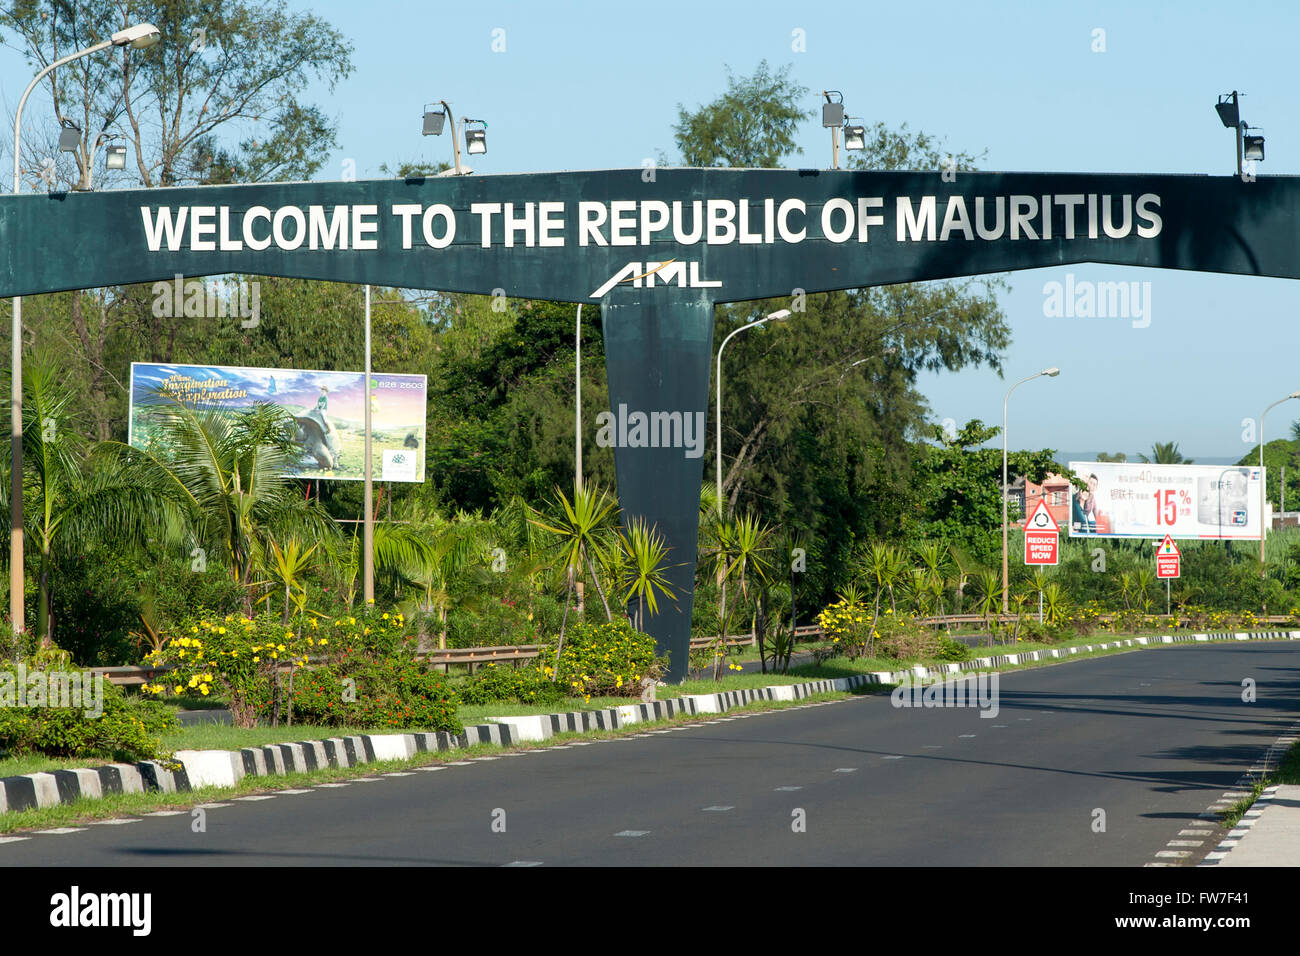 Welcome sign near Sir Seewoosagur Ramgoolam airport in Mauritius. - Stock Image